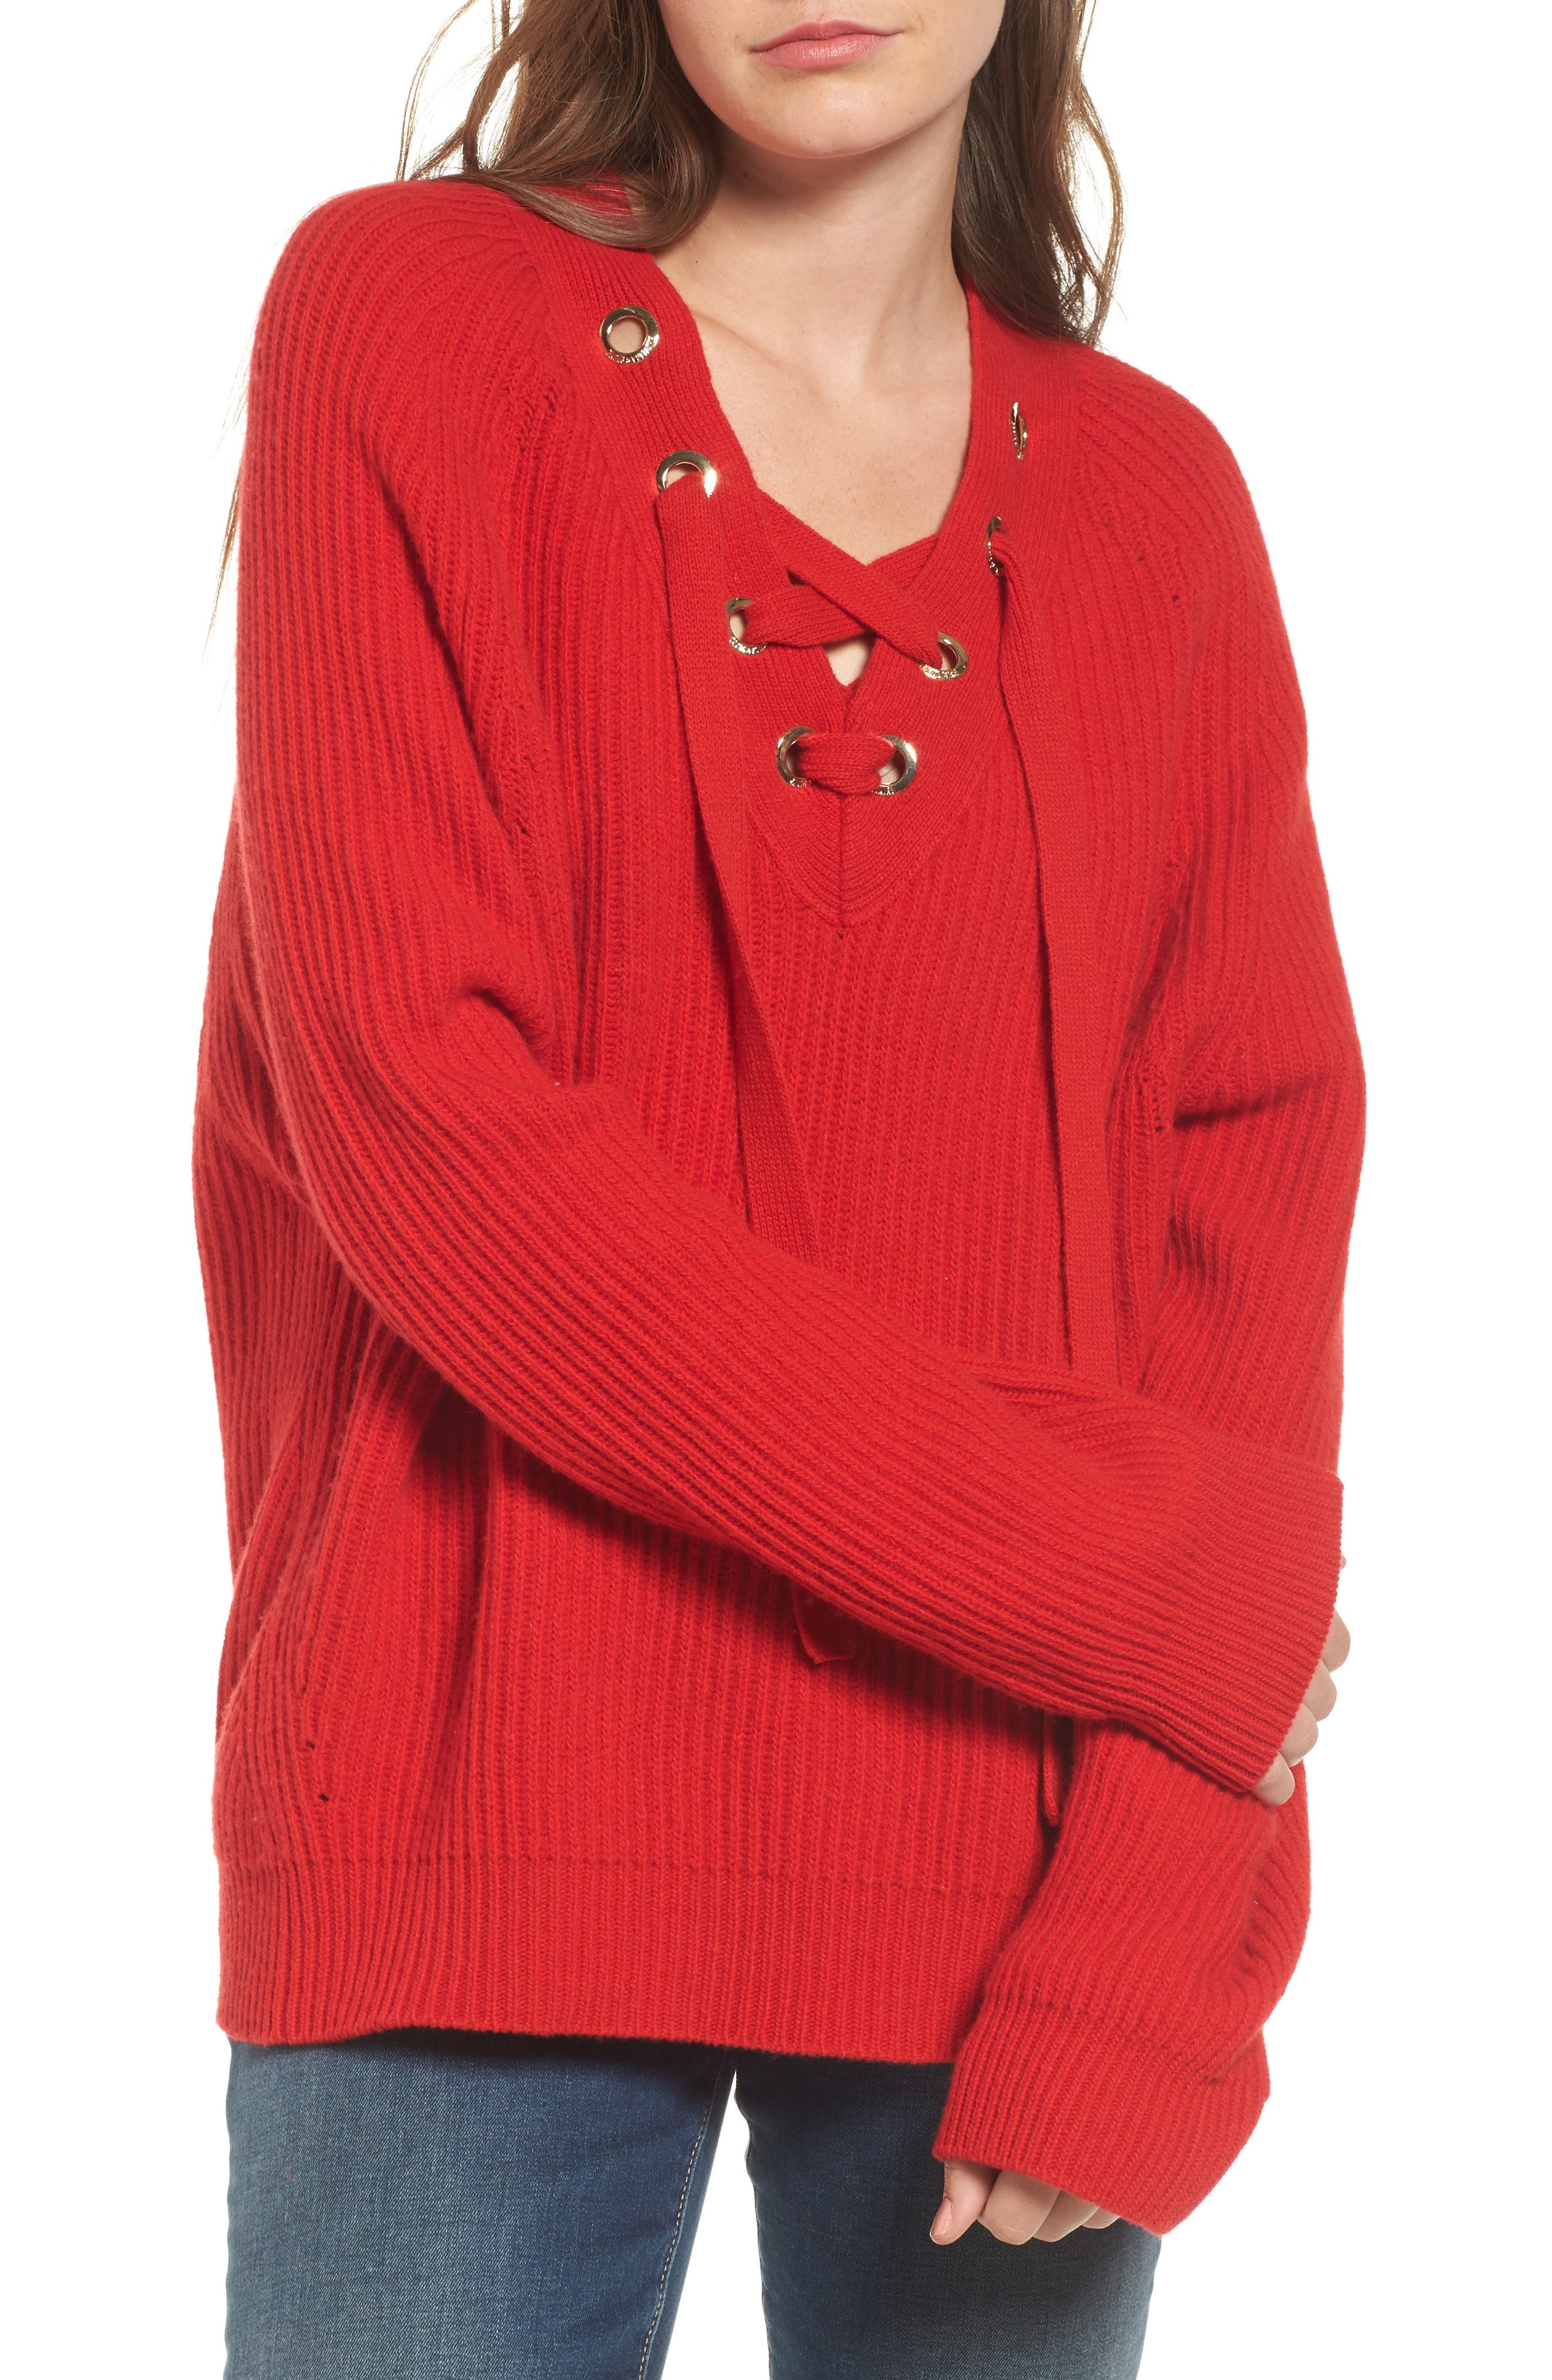 Kassy Wool Blend Sweater,                             Main thumbnail 1, color,                             600